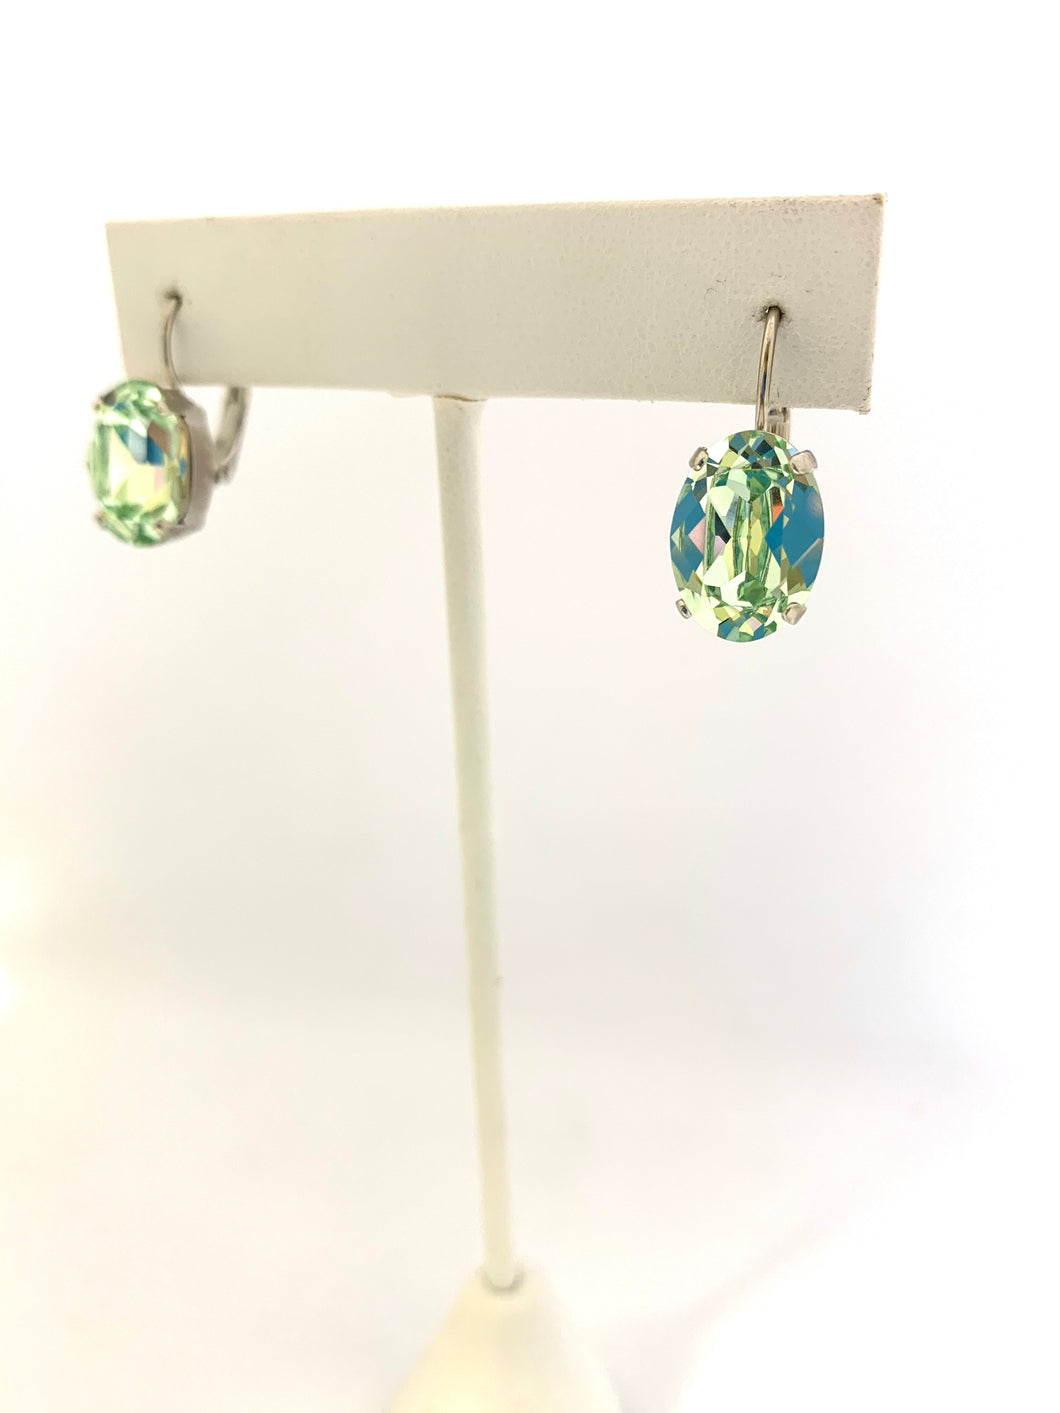 Swarovski Crystal Oval Leverbacks - Lively Accents